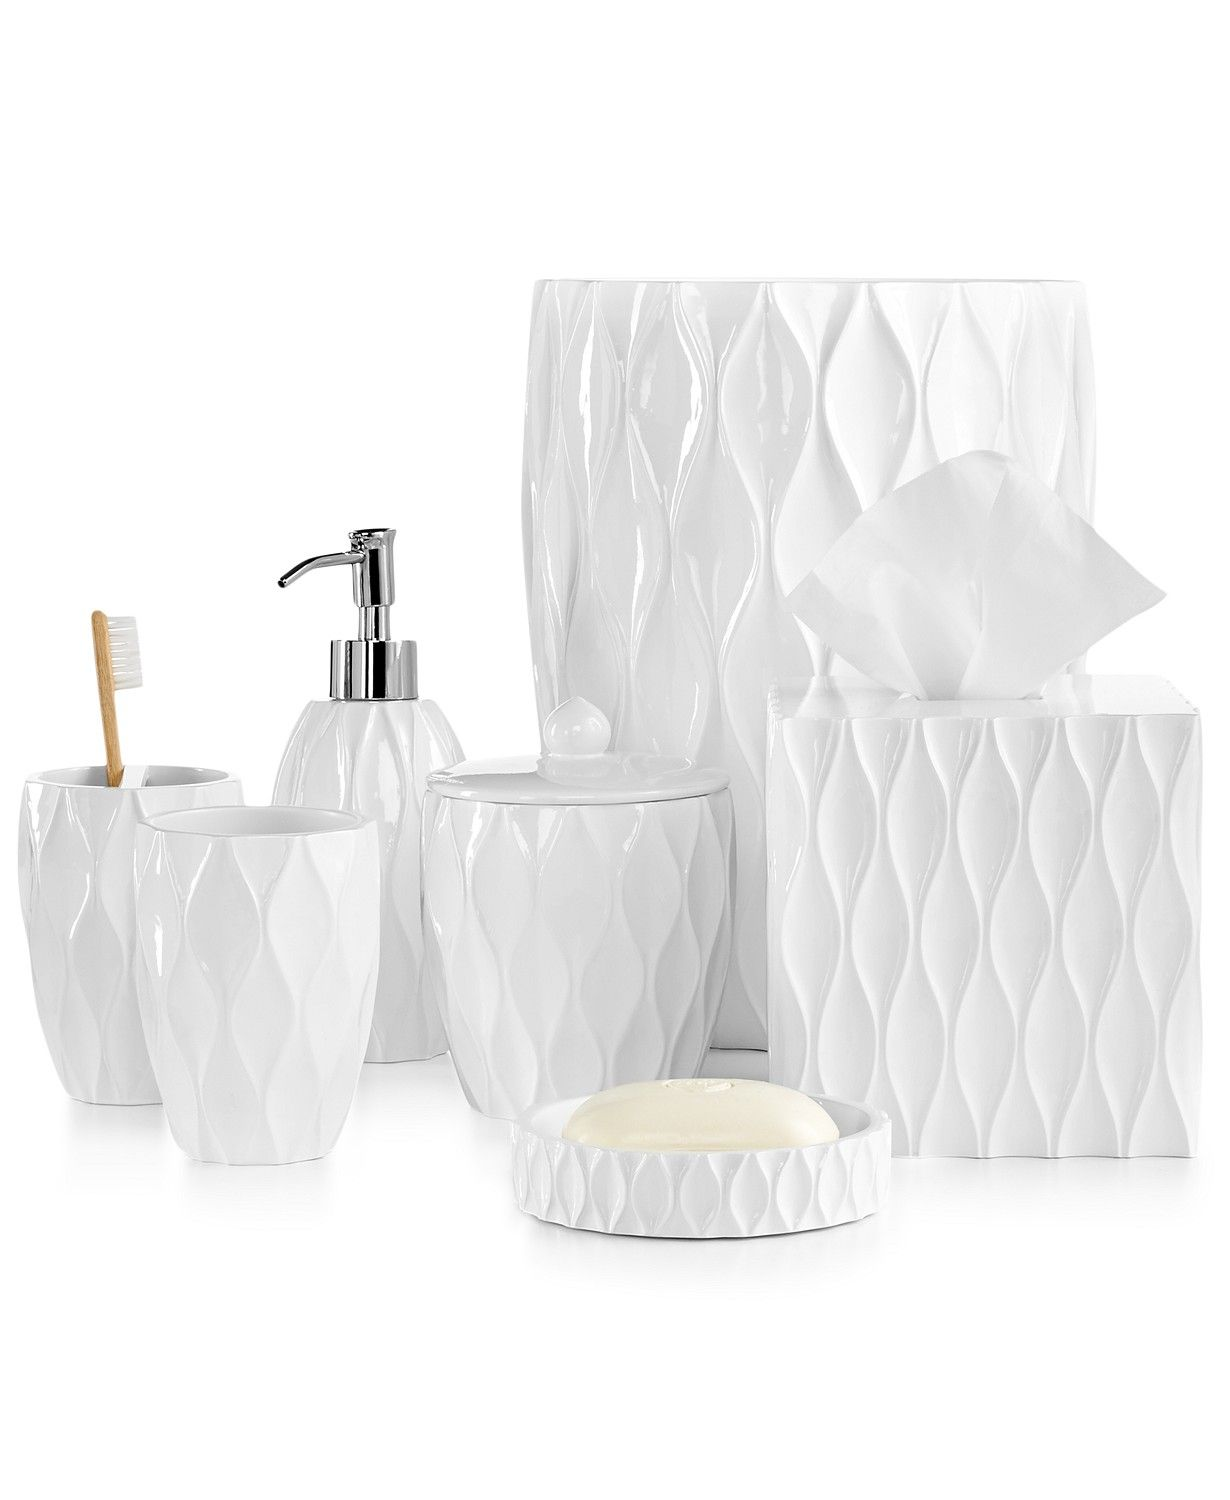 Roselli Trading Company Roselli Trading Wave Bath Accessories Collection & Reviews – Bathroom Accessories – Bed & Bath – Macy's